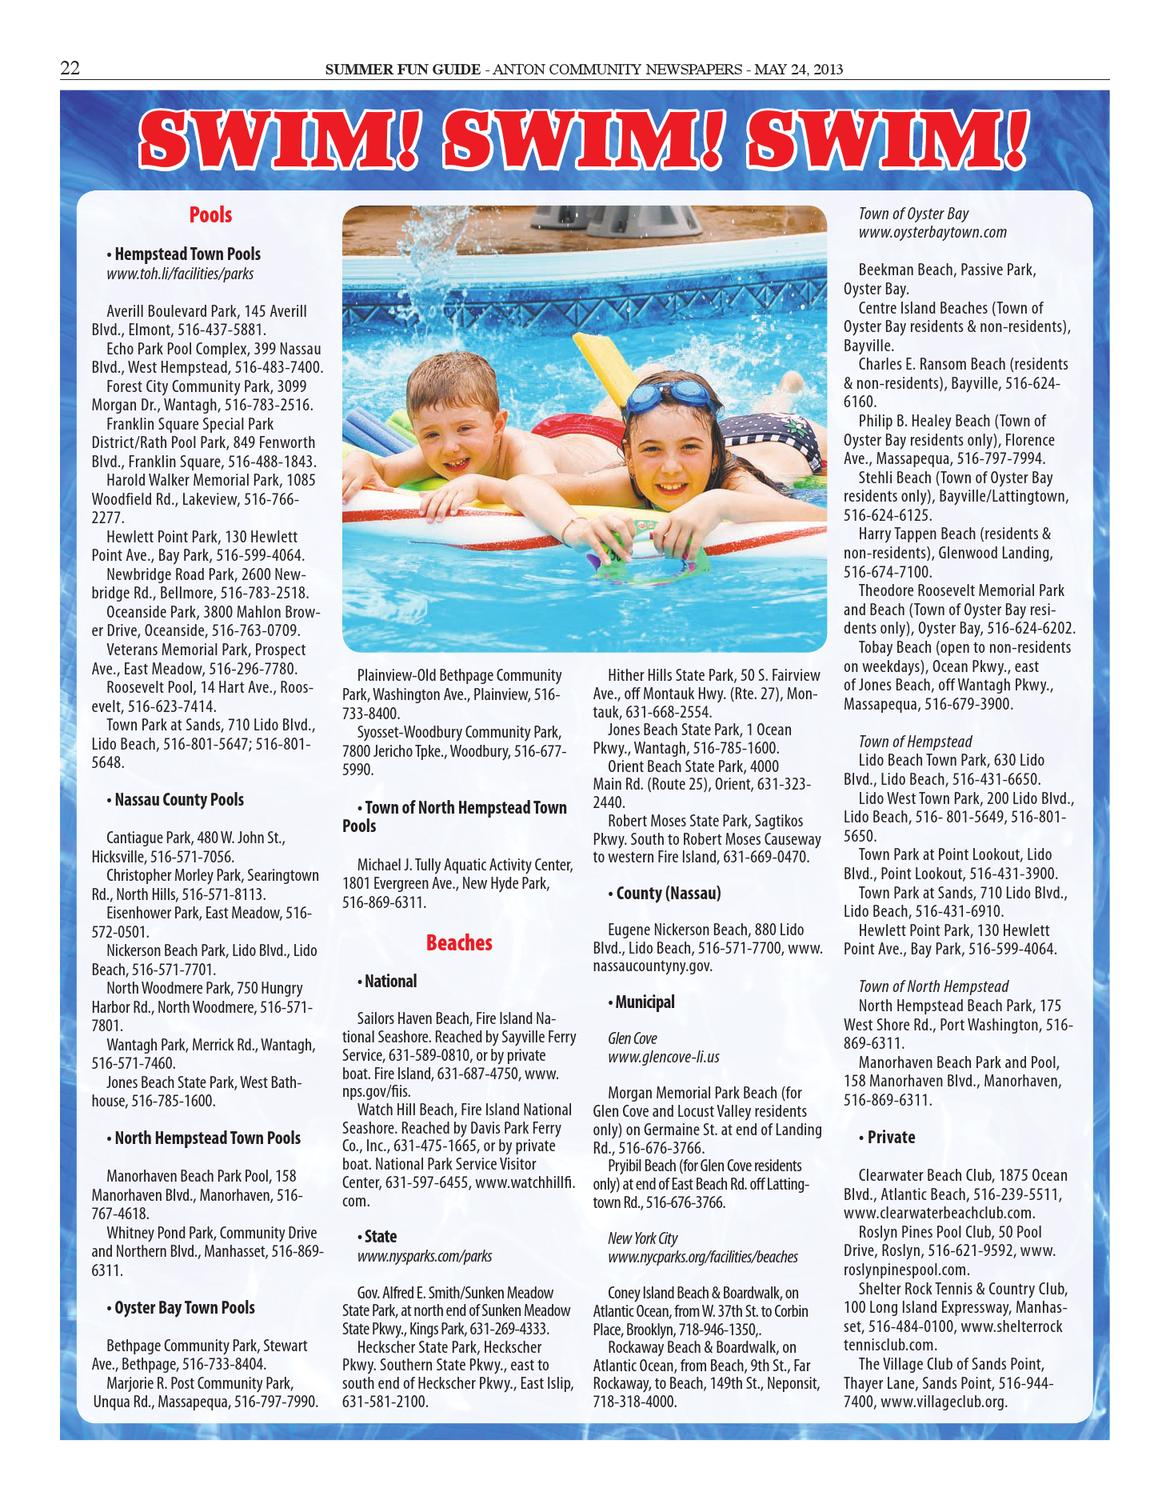 Summer Fun Guide: 2013 by Anton Community Newspapers - issuu